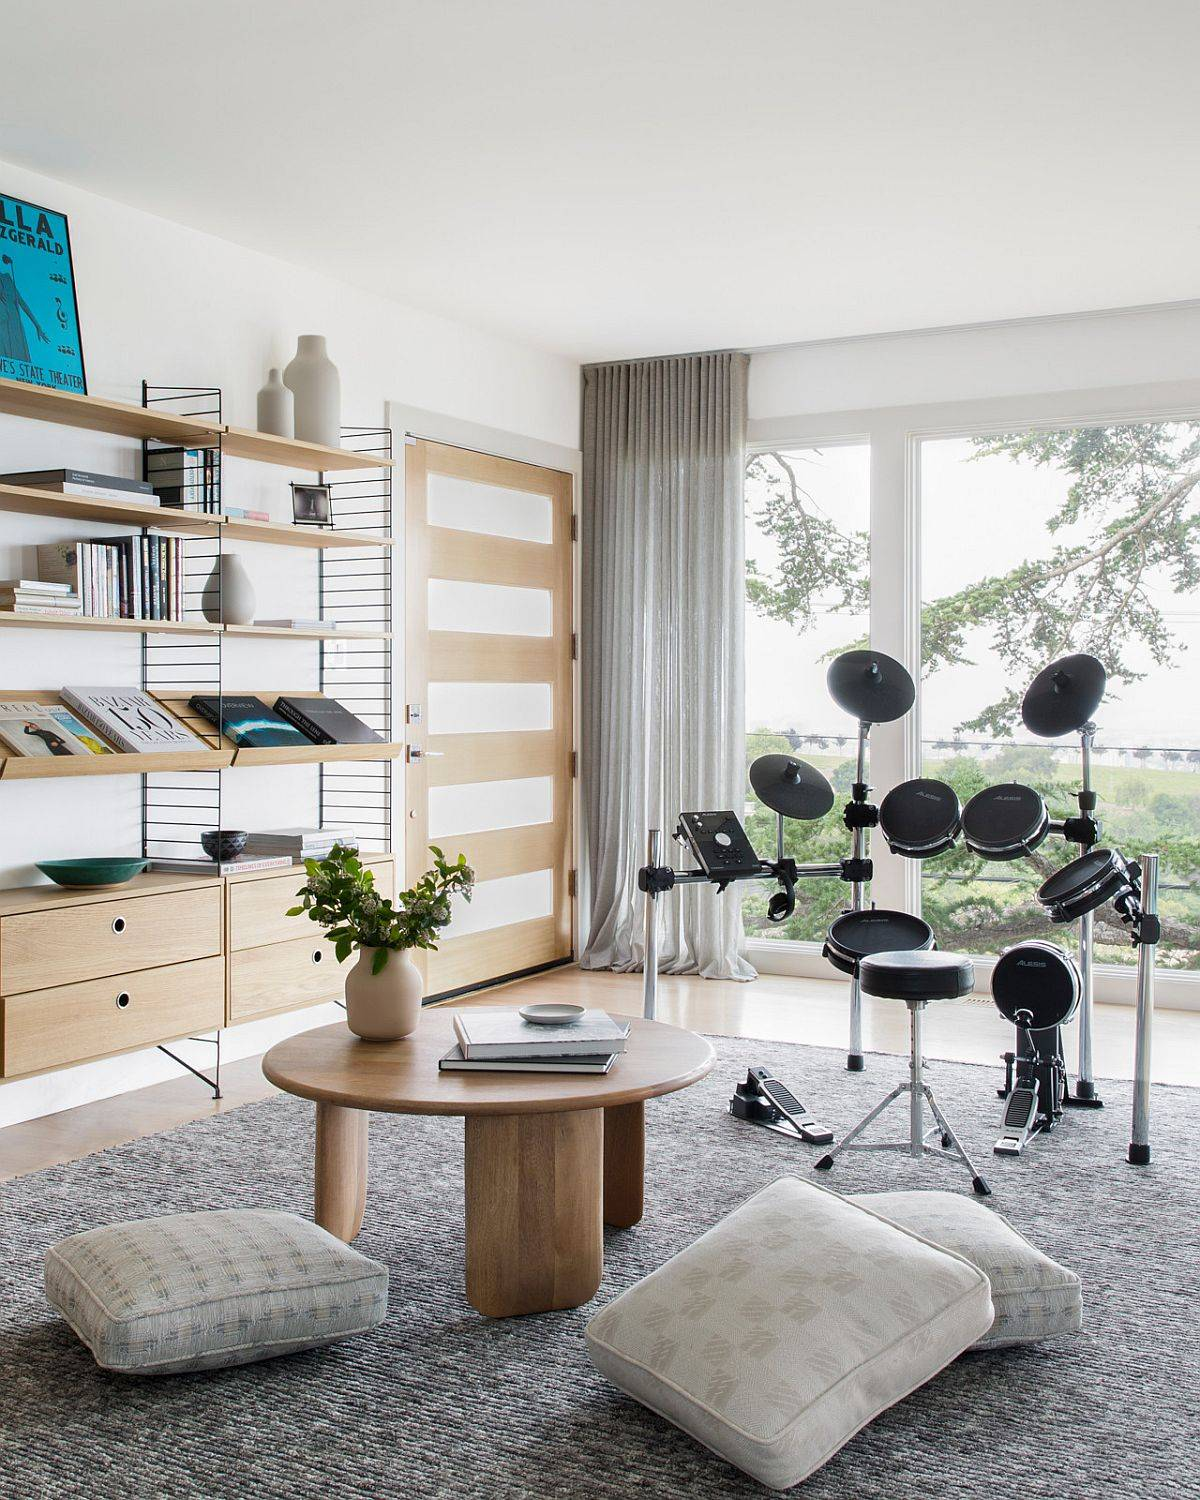 Polished-and-stylish-family-room-for-the-musically-inclined-with-floor-cushions-91021